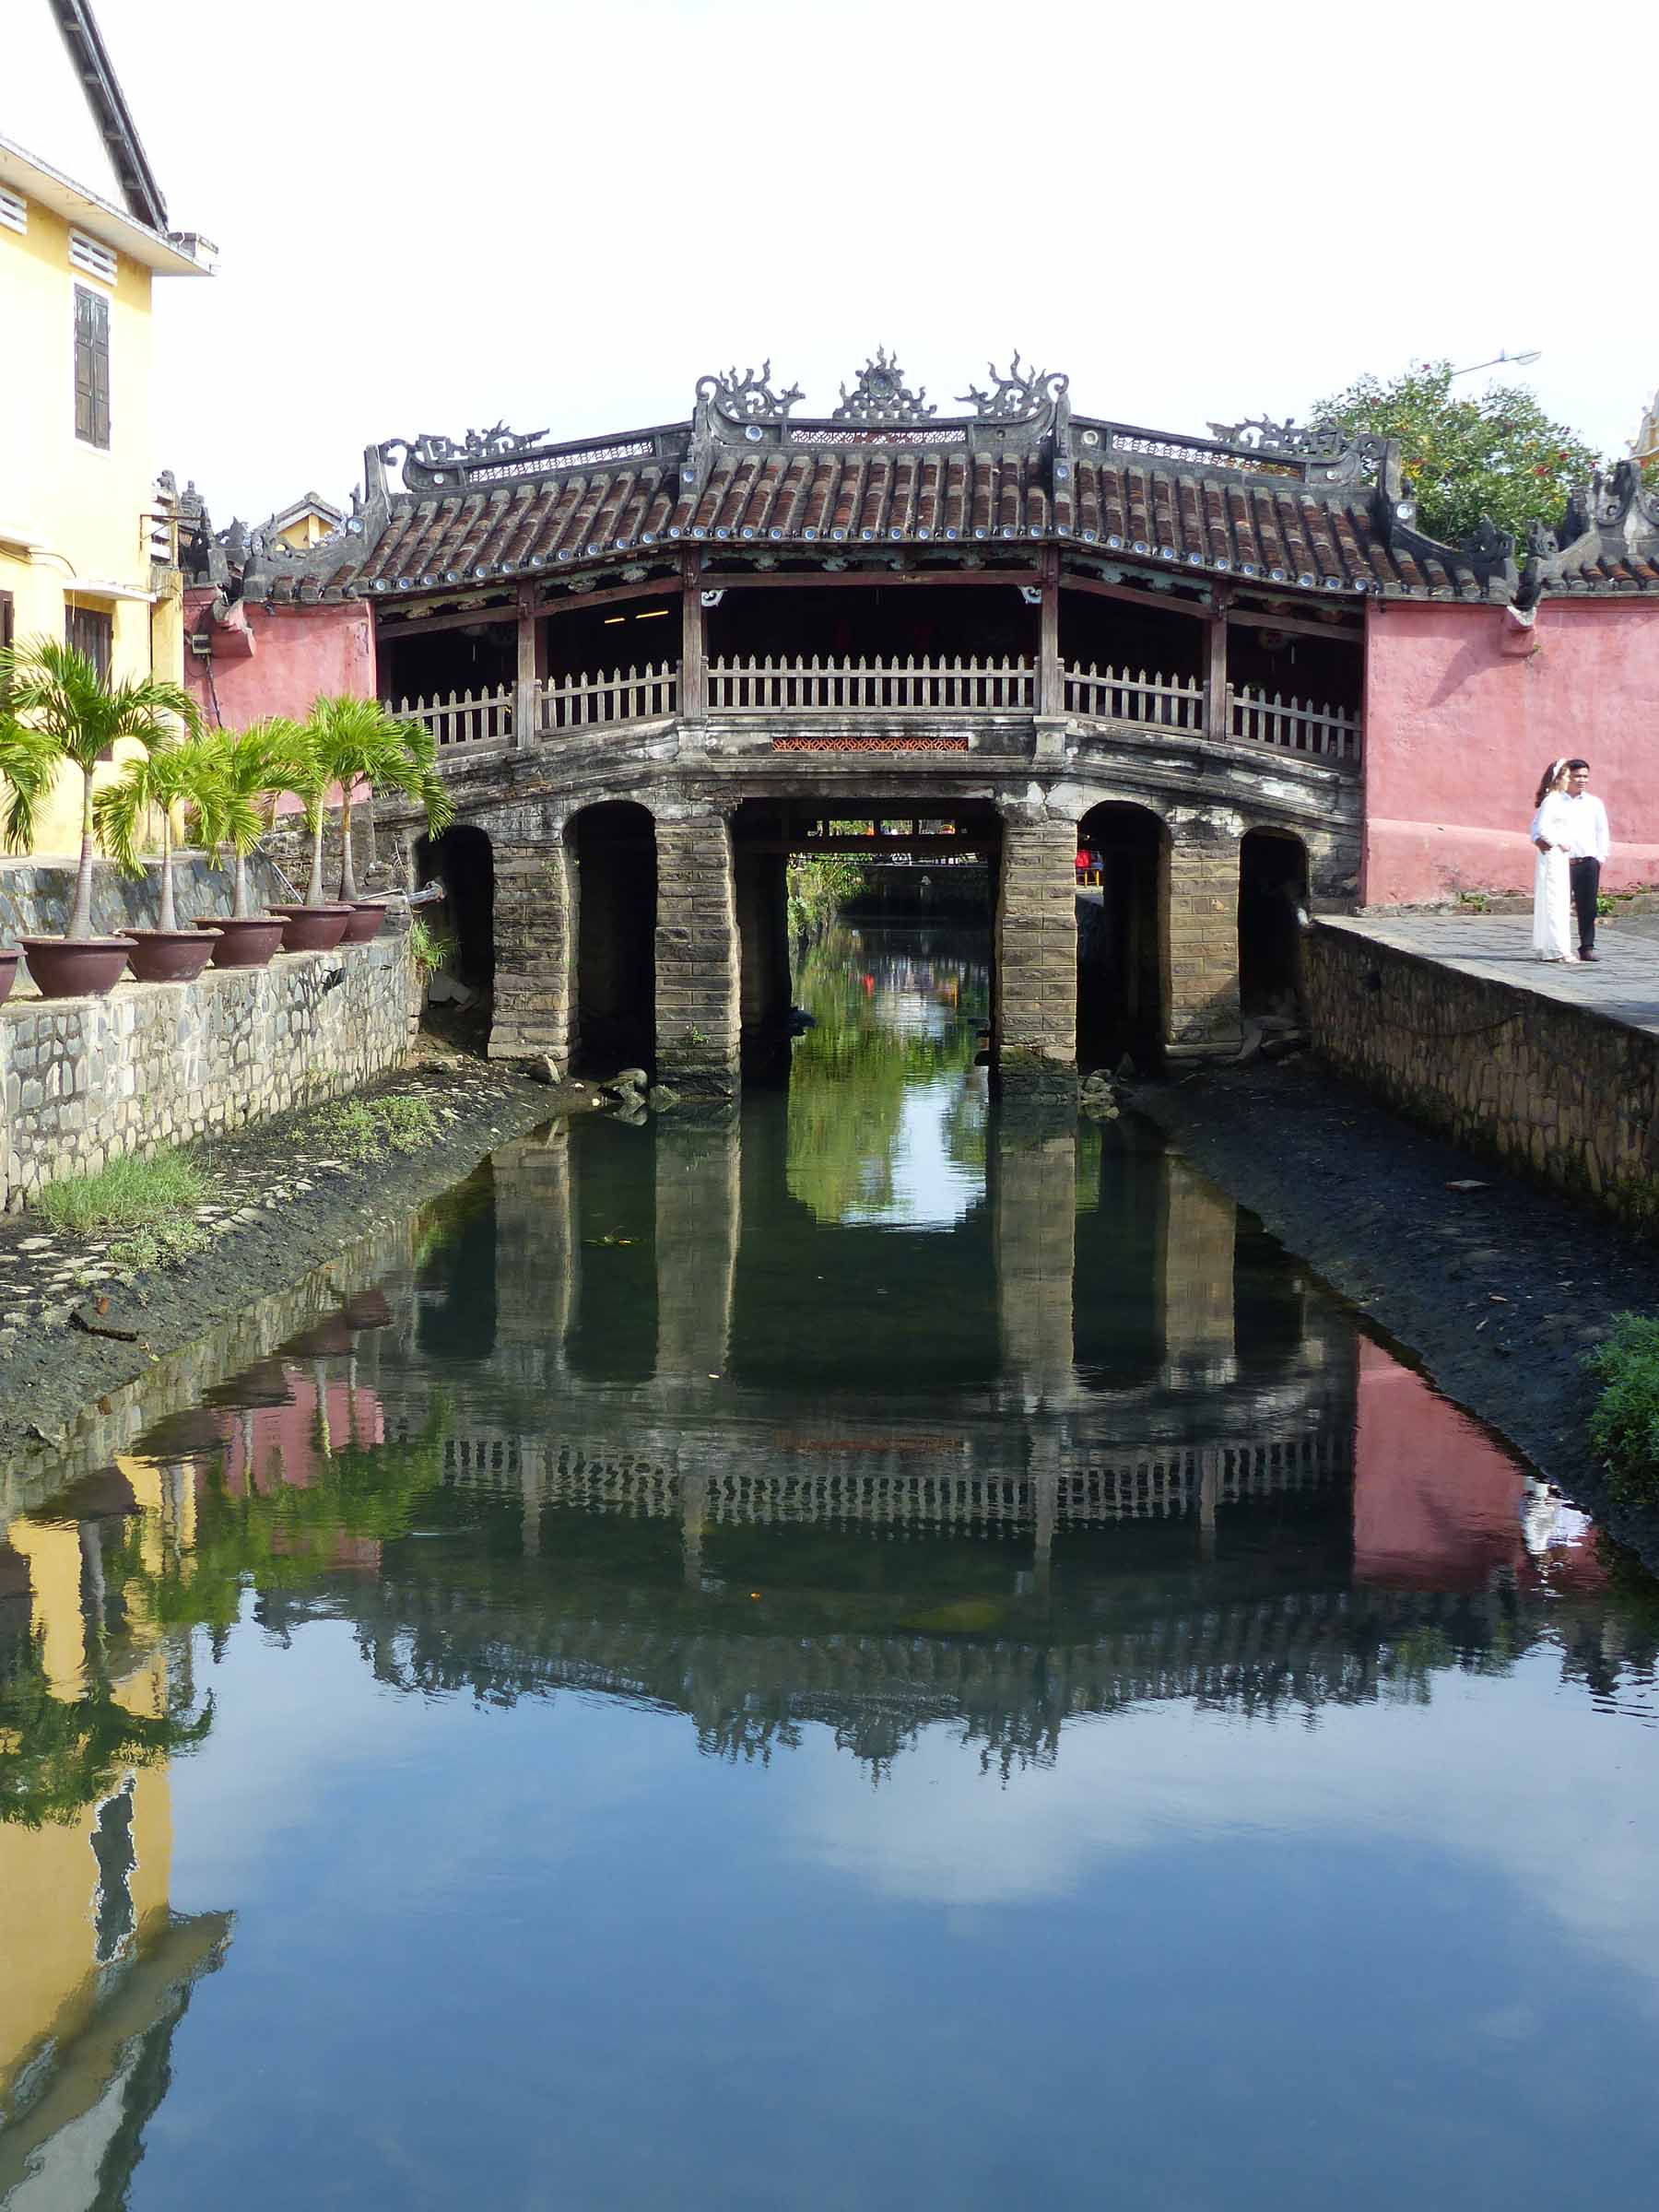 Oriental style bridge over a canal